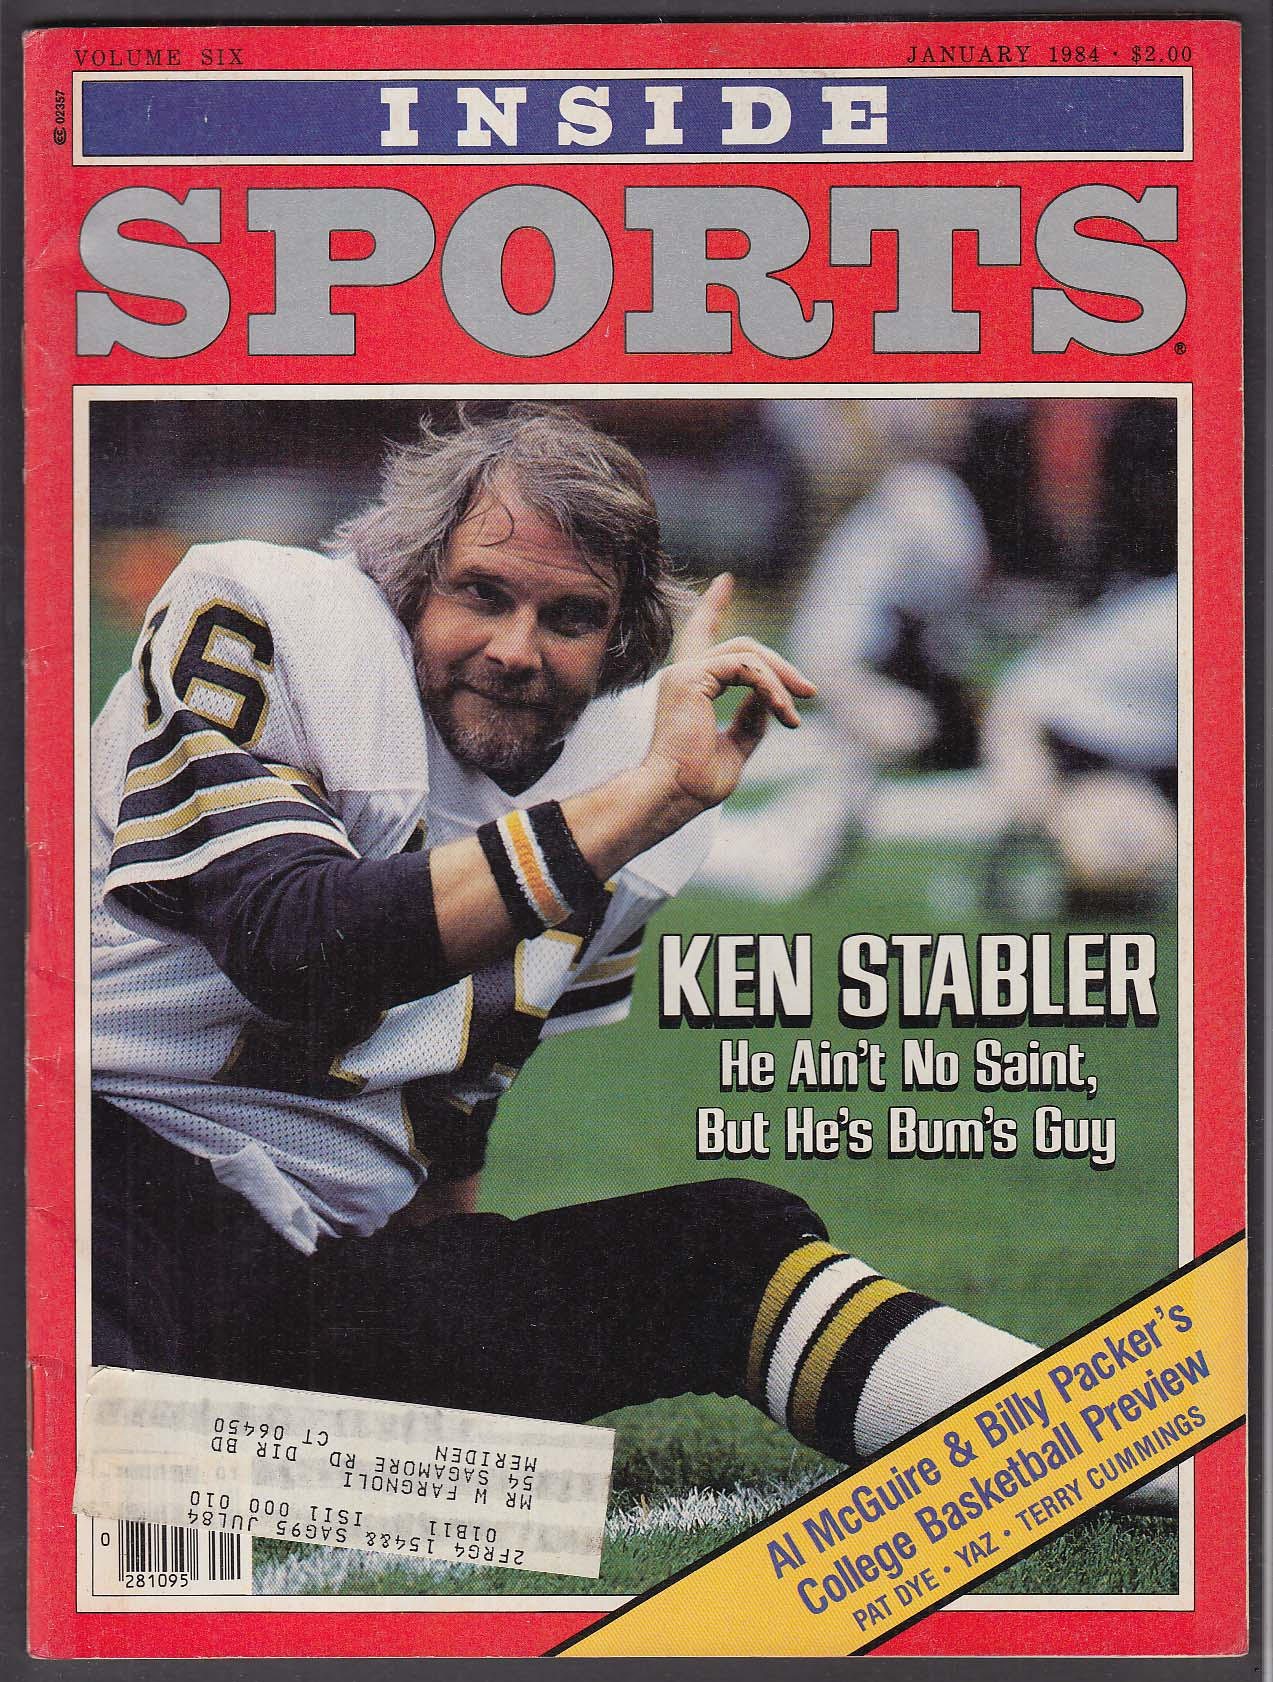 INSIDE SPORTS Ken Stabler Al McGuire Billy Packer + 1 1984